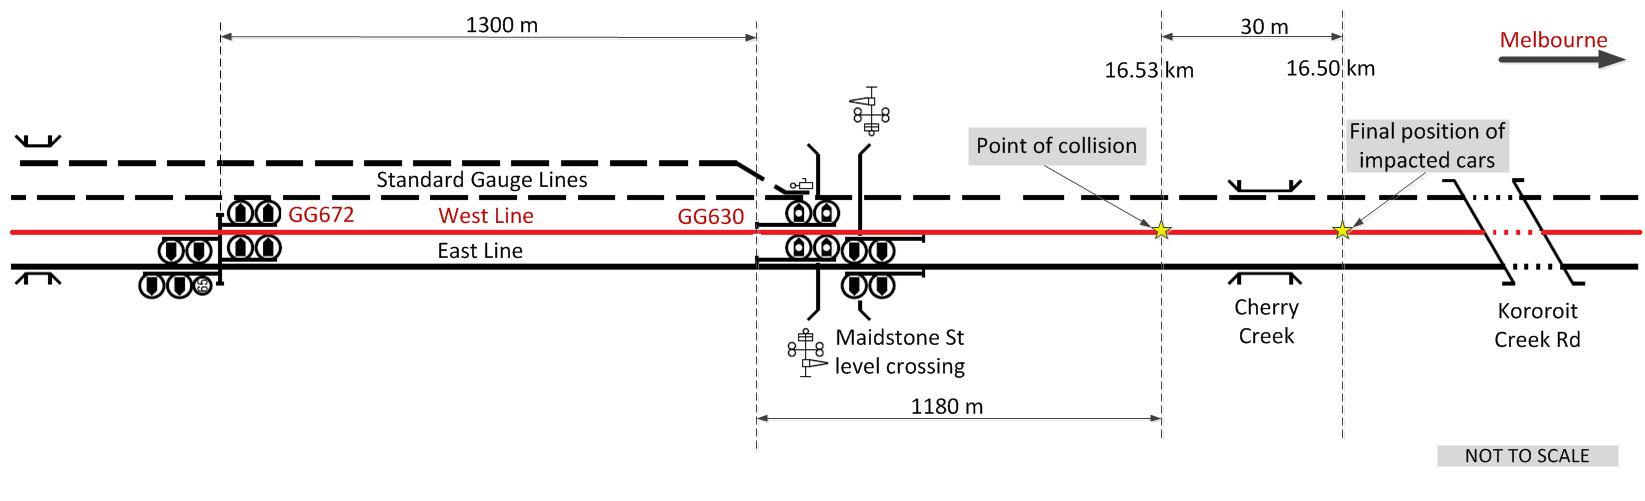 Figure 2: Collision location and signals